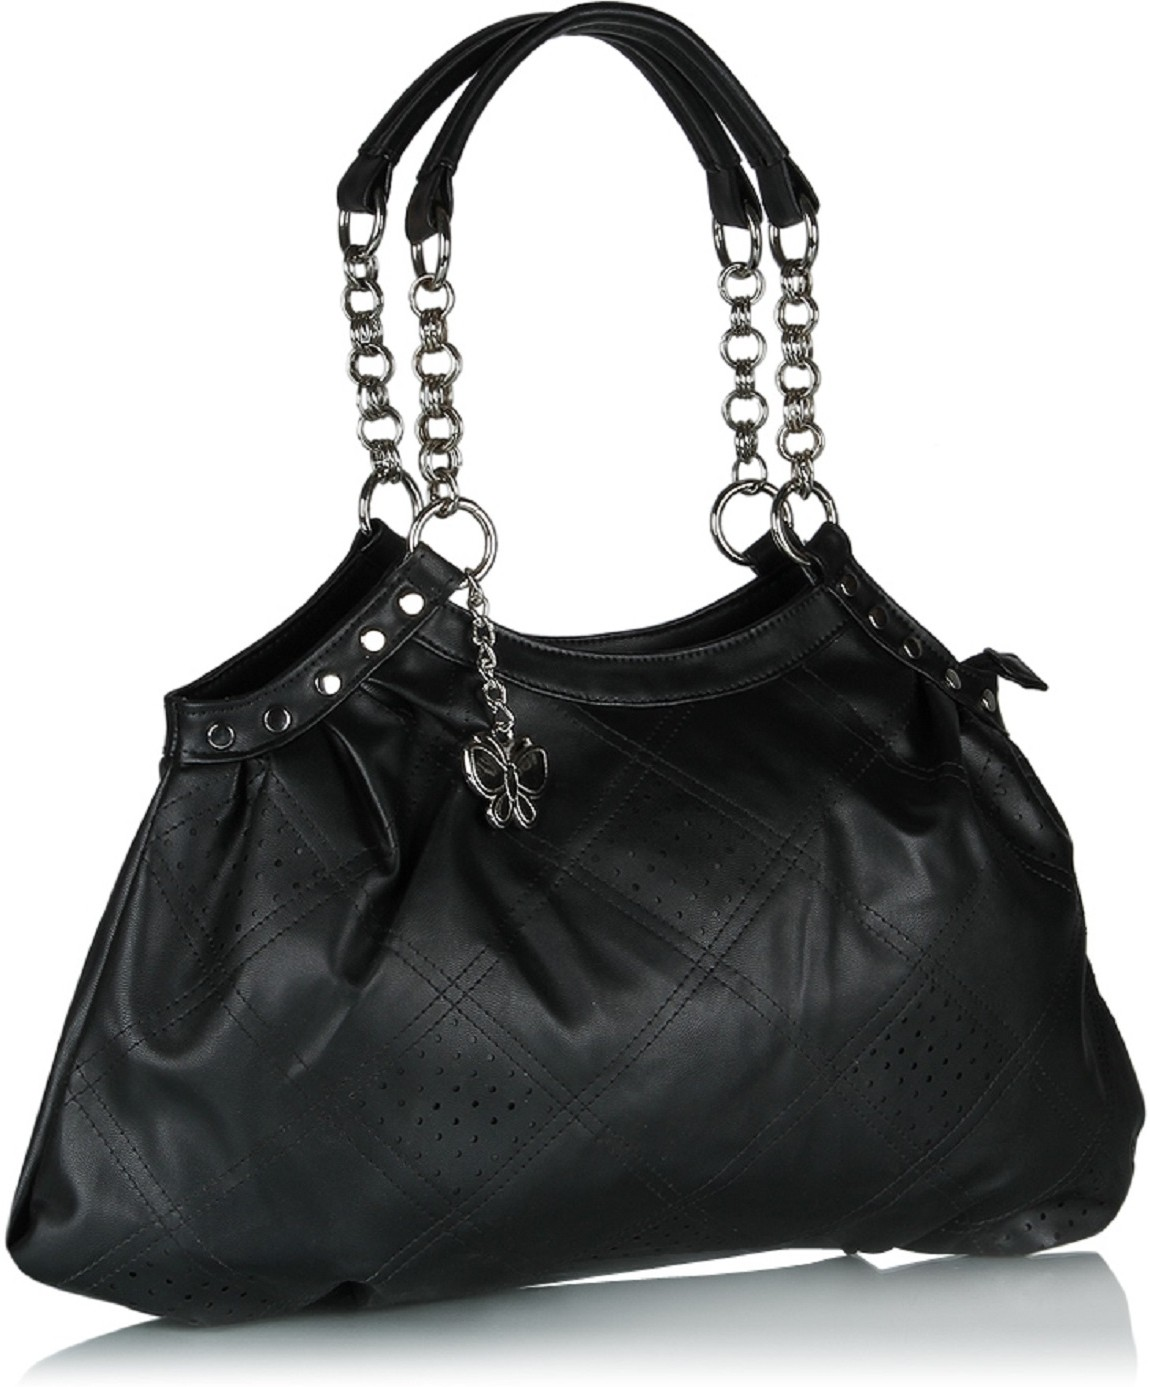 Gym Bag Flipkart: Butterflies Perforated Design Hand Bag Black